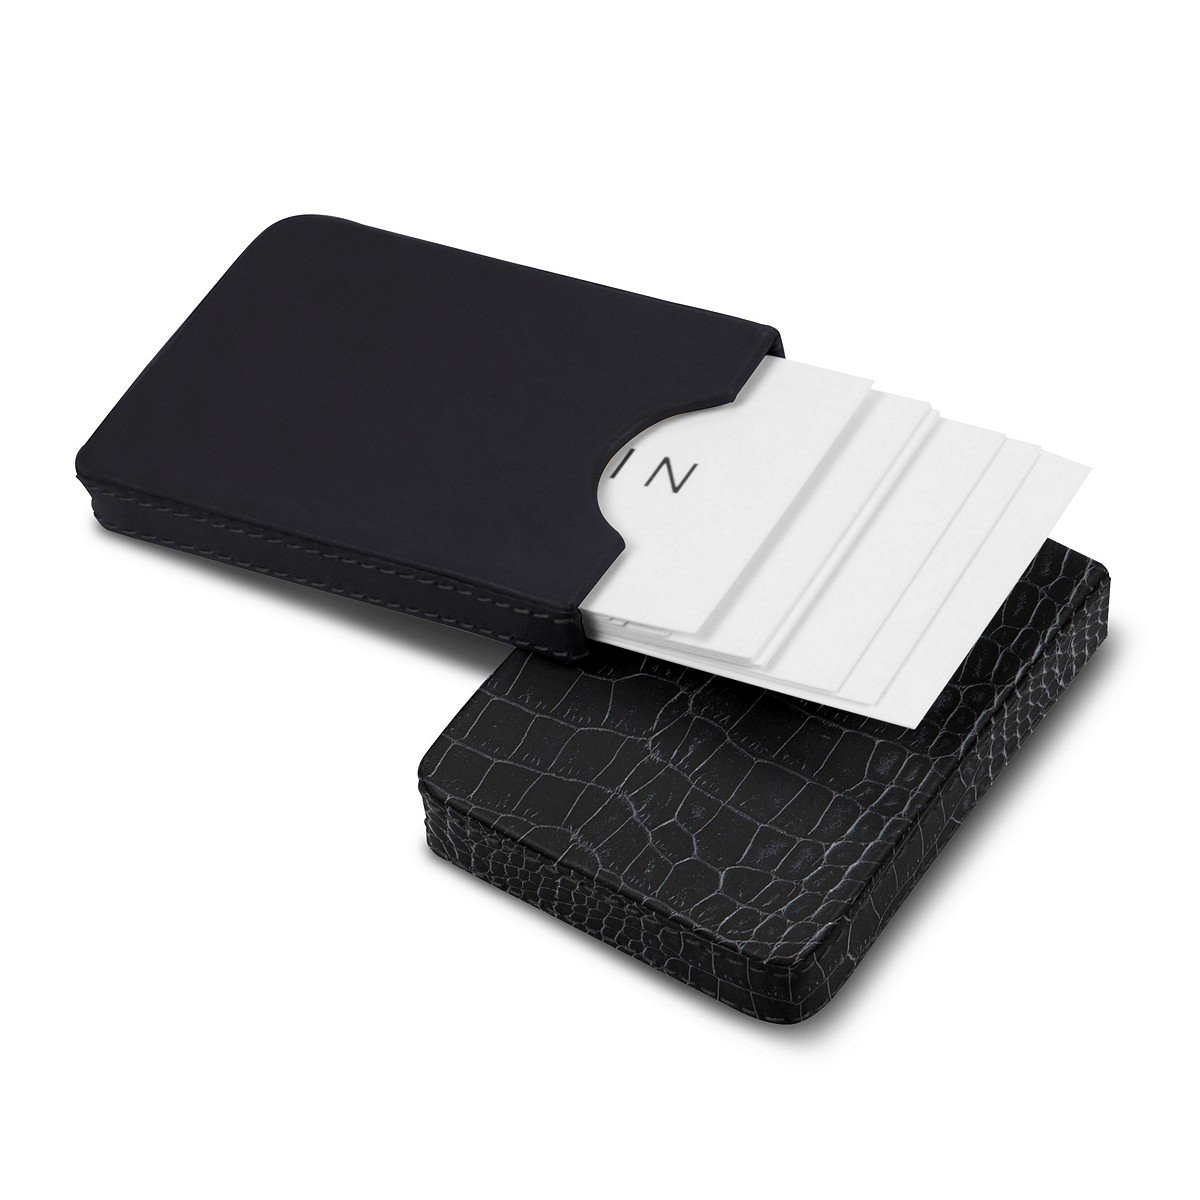 Lucrin - Sliding two-parts case for business cards - Black - Crocodile style calfskin